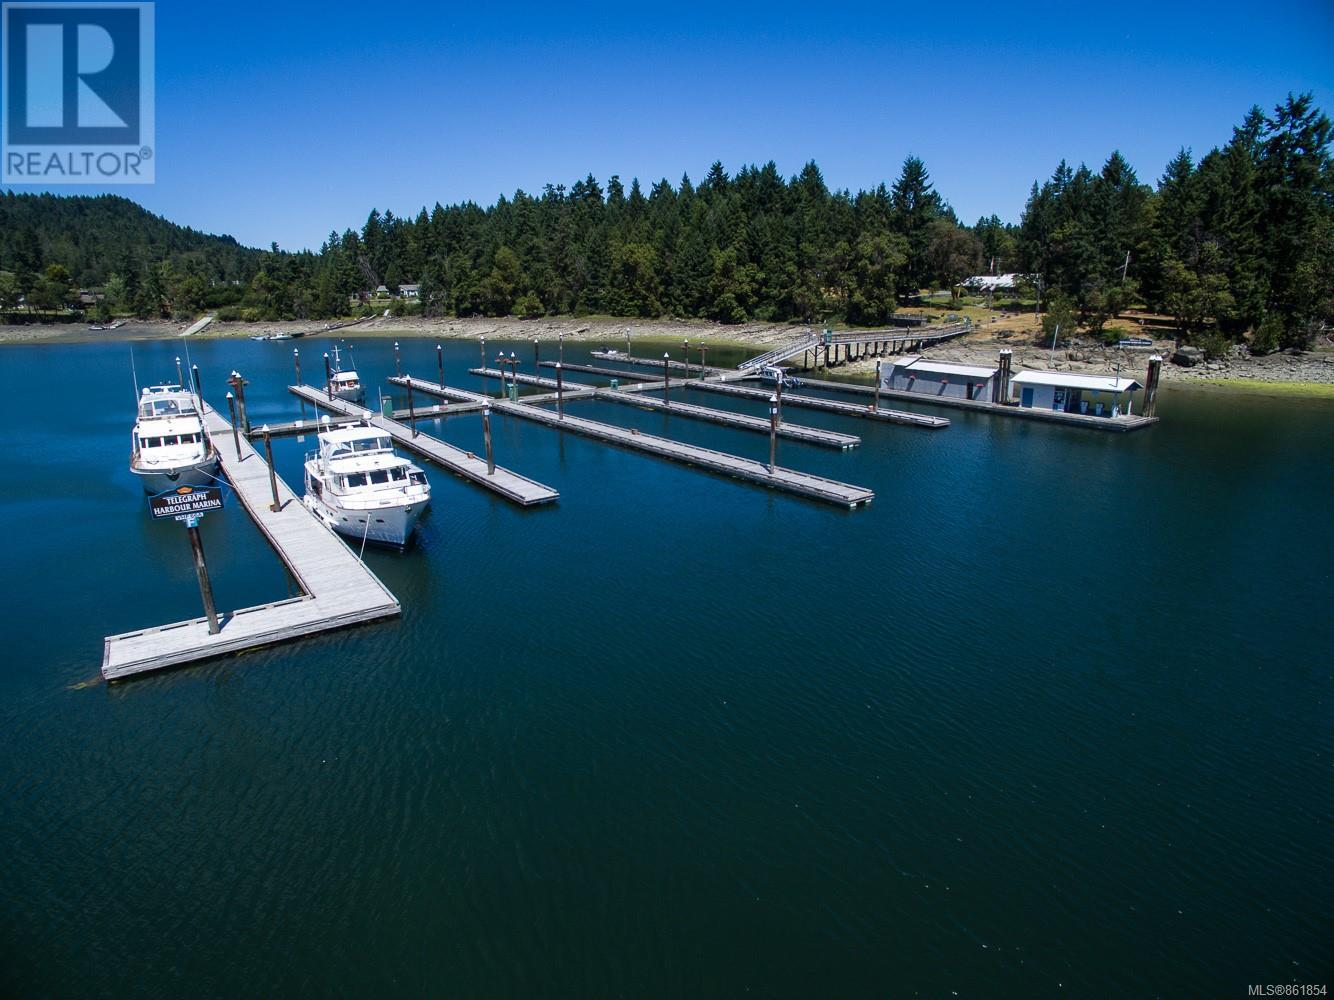 MLS® #861854 - Thetis Island Other For sale Image #3